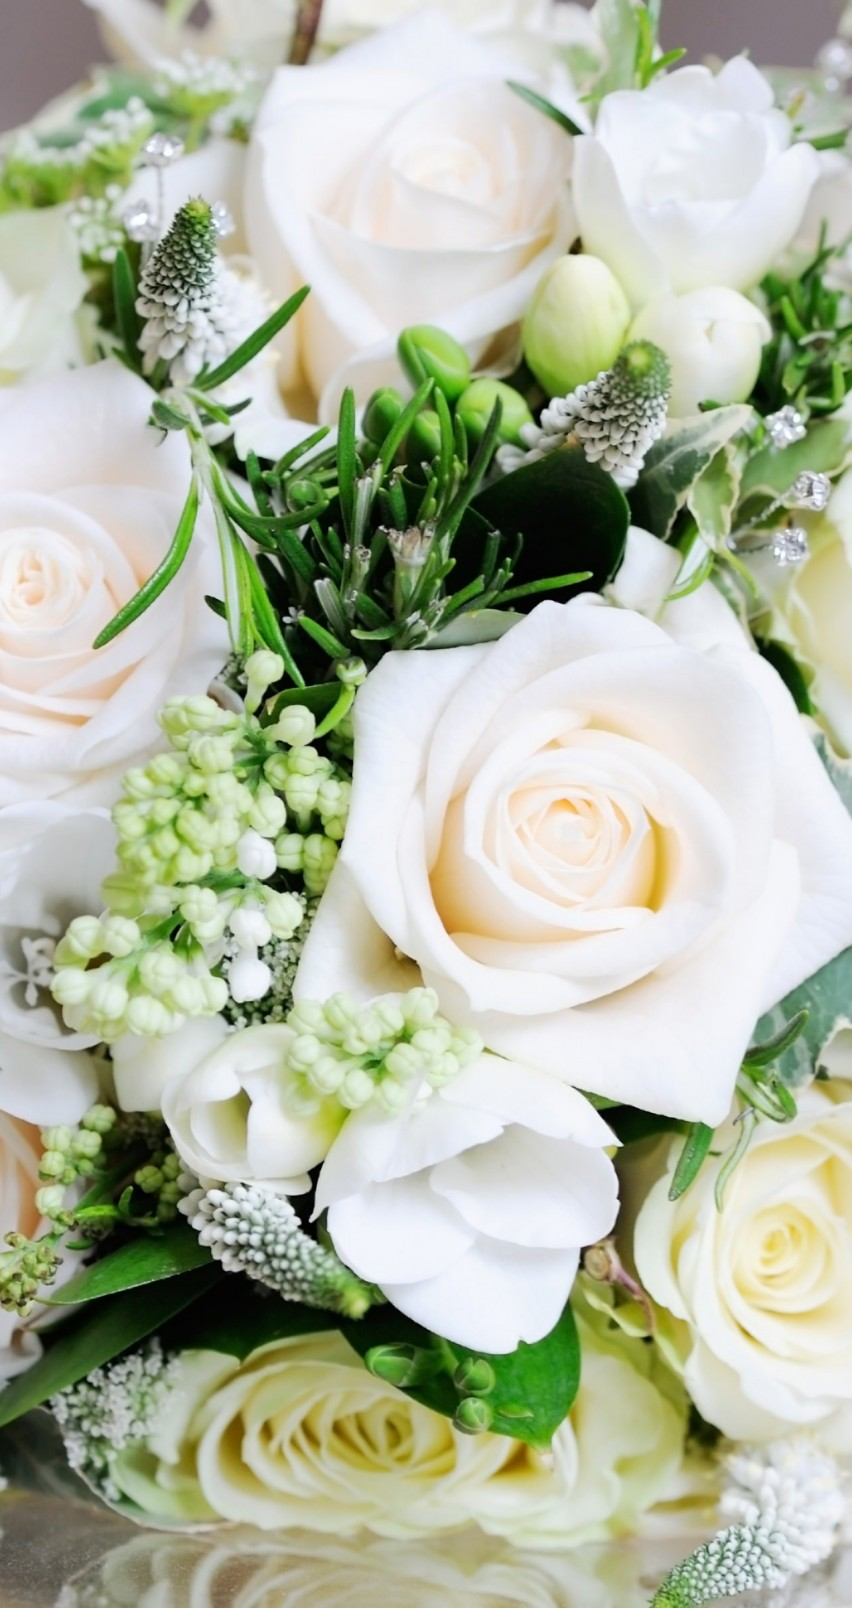 Beautiful White Roses Bouquet Wallpaper for Apple iPhone 6 / 6s